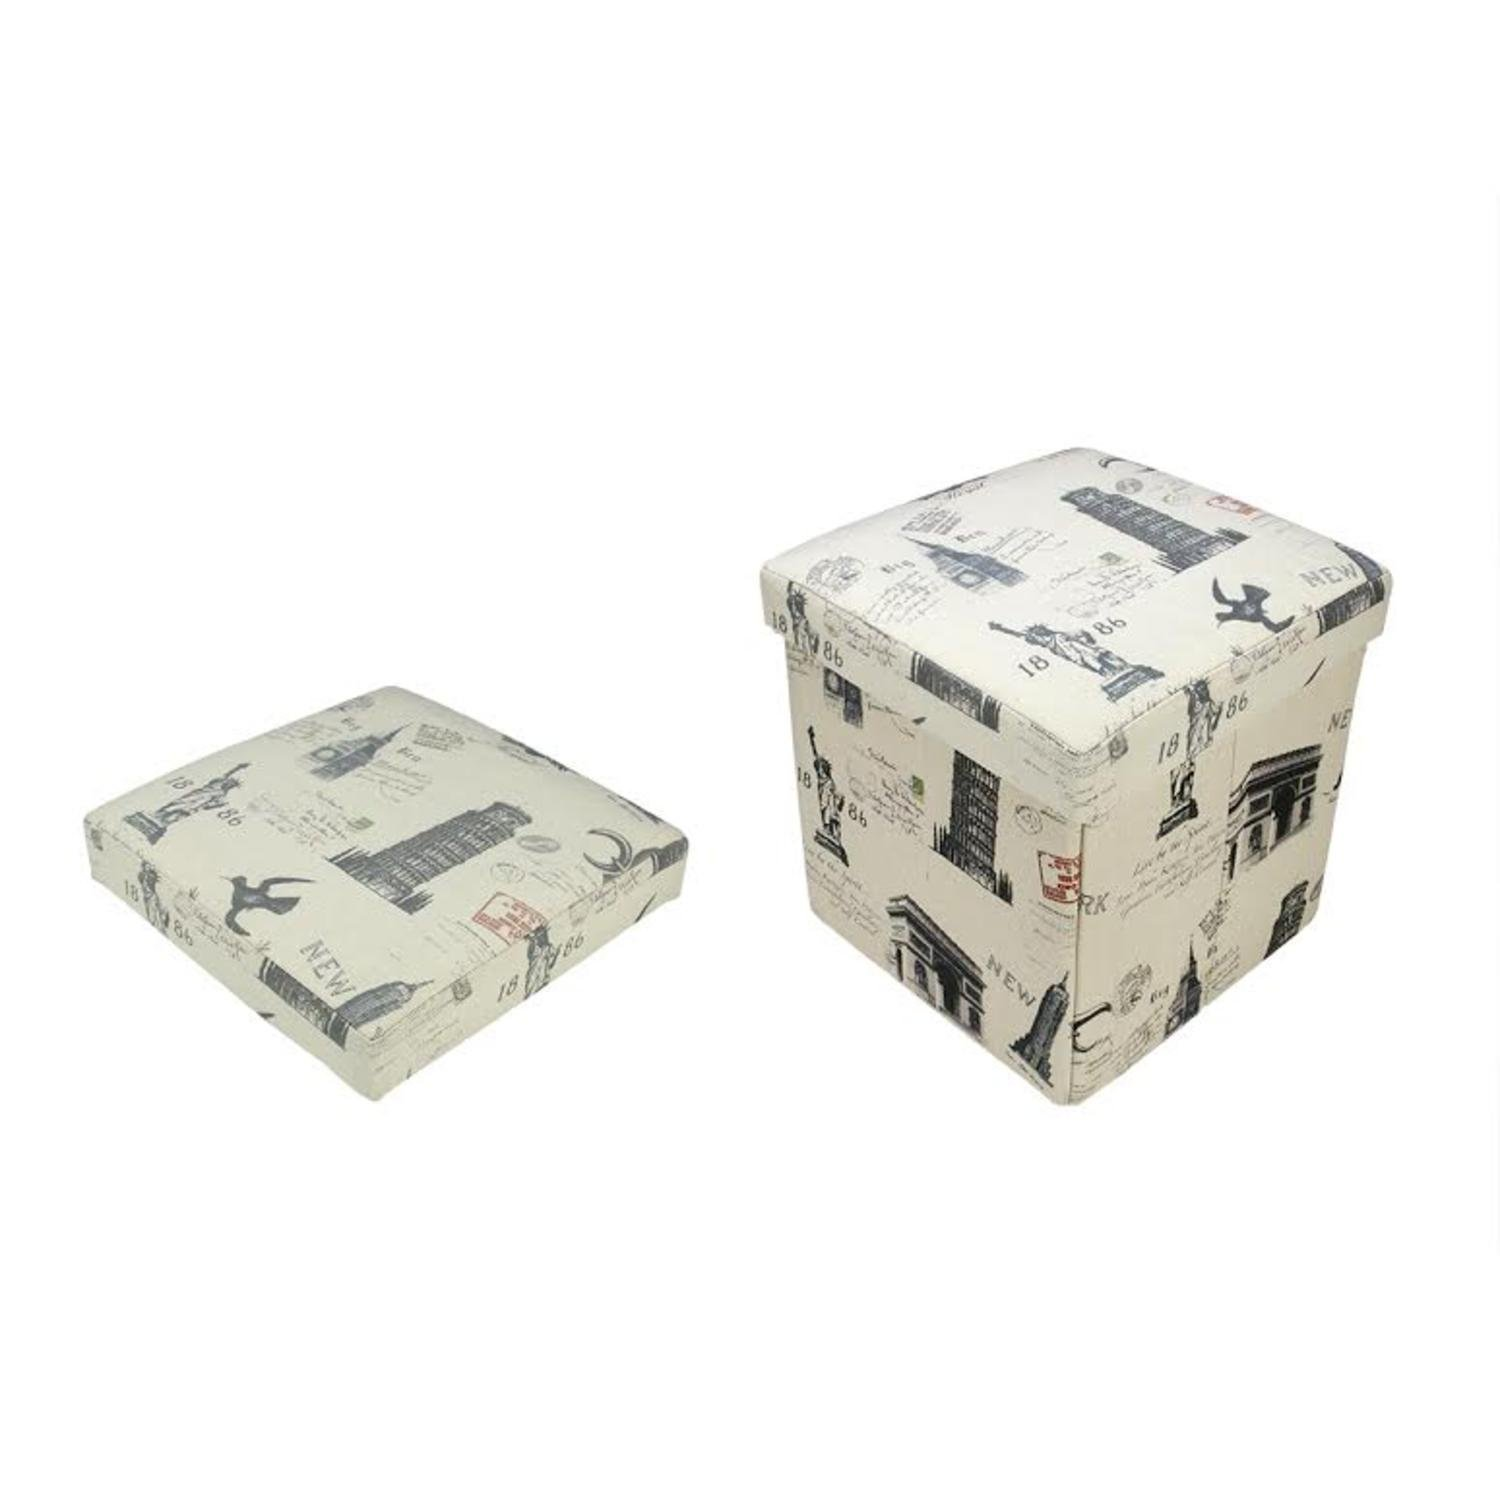 Northlight 12'' Decorative Vintage-Style New York Travel Inspired Collapsible Sqaure Storage Ottoman